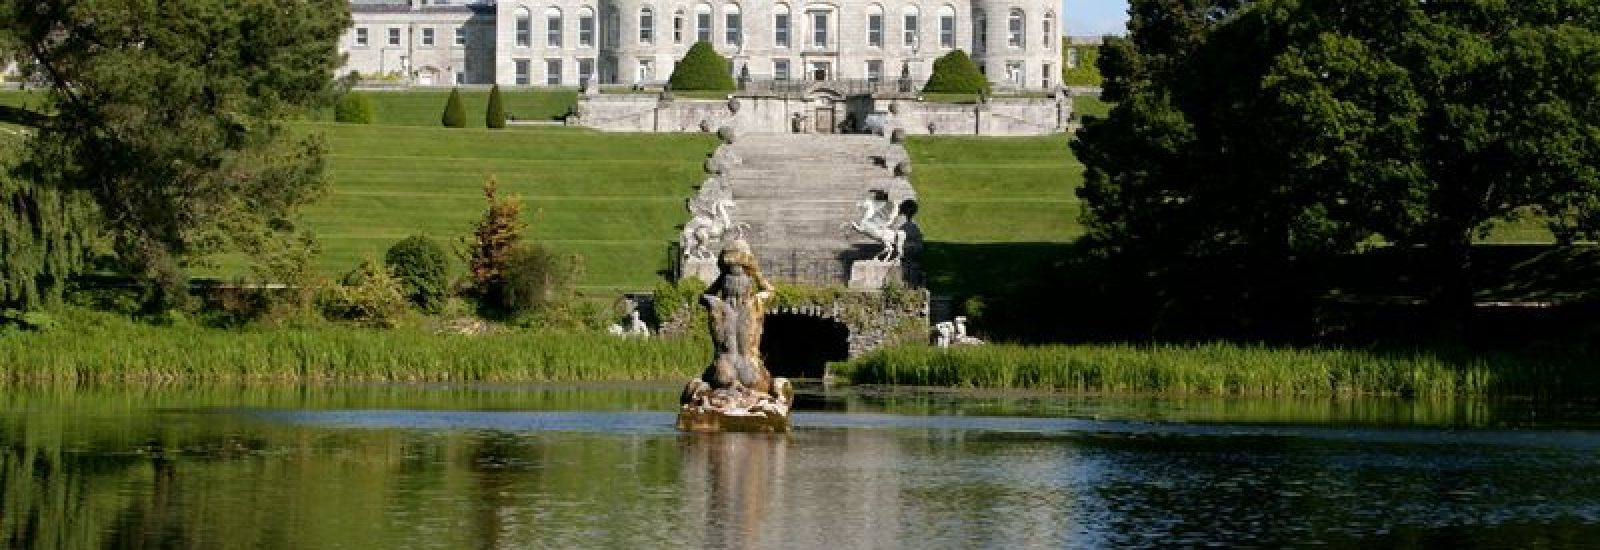 Powerscourt voted no. 3 in the World's Top 10 Gardens by the National Geographic